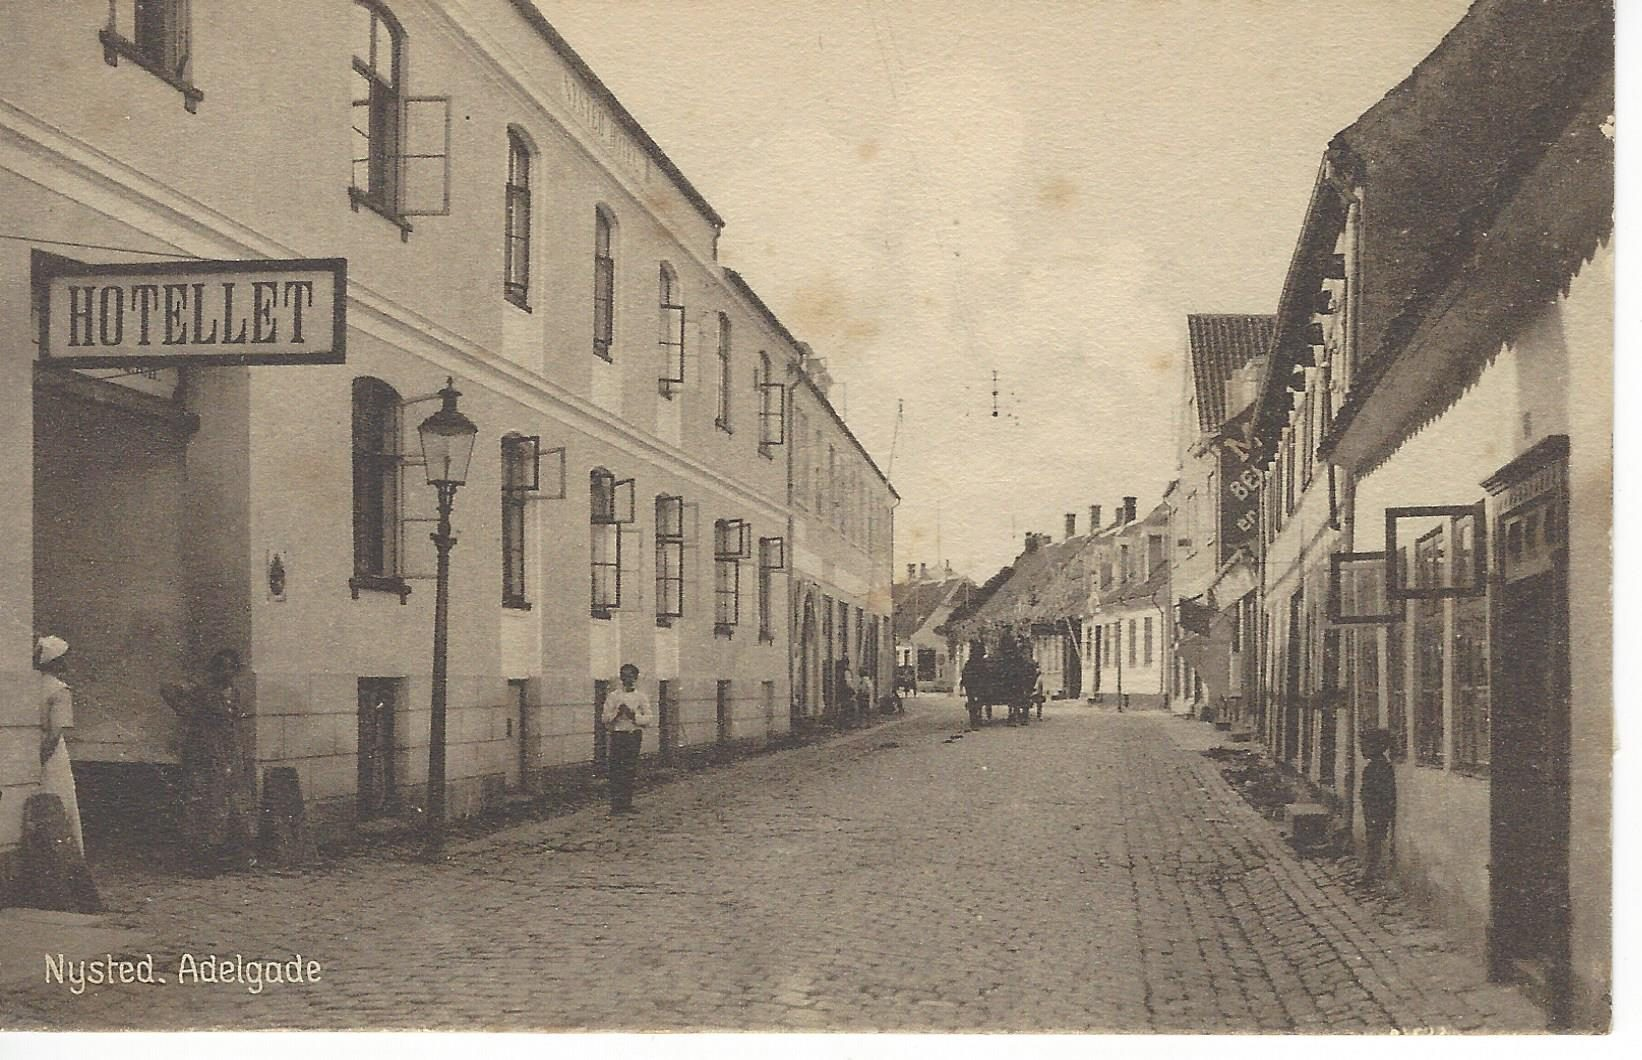 35-Adelgade-Nysted-Hotel